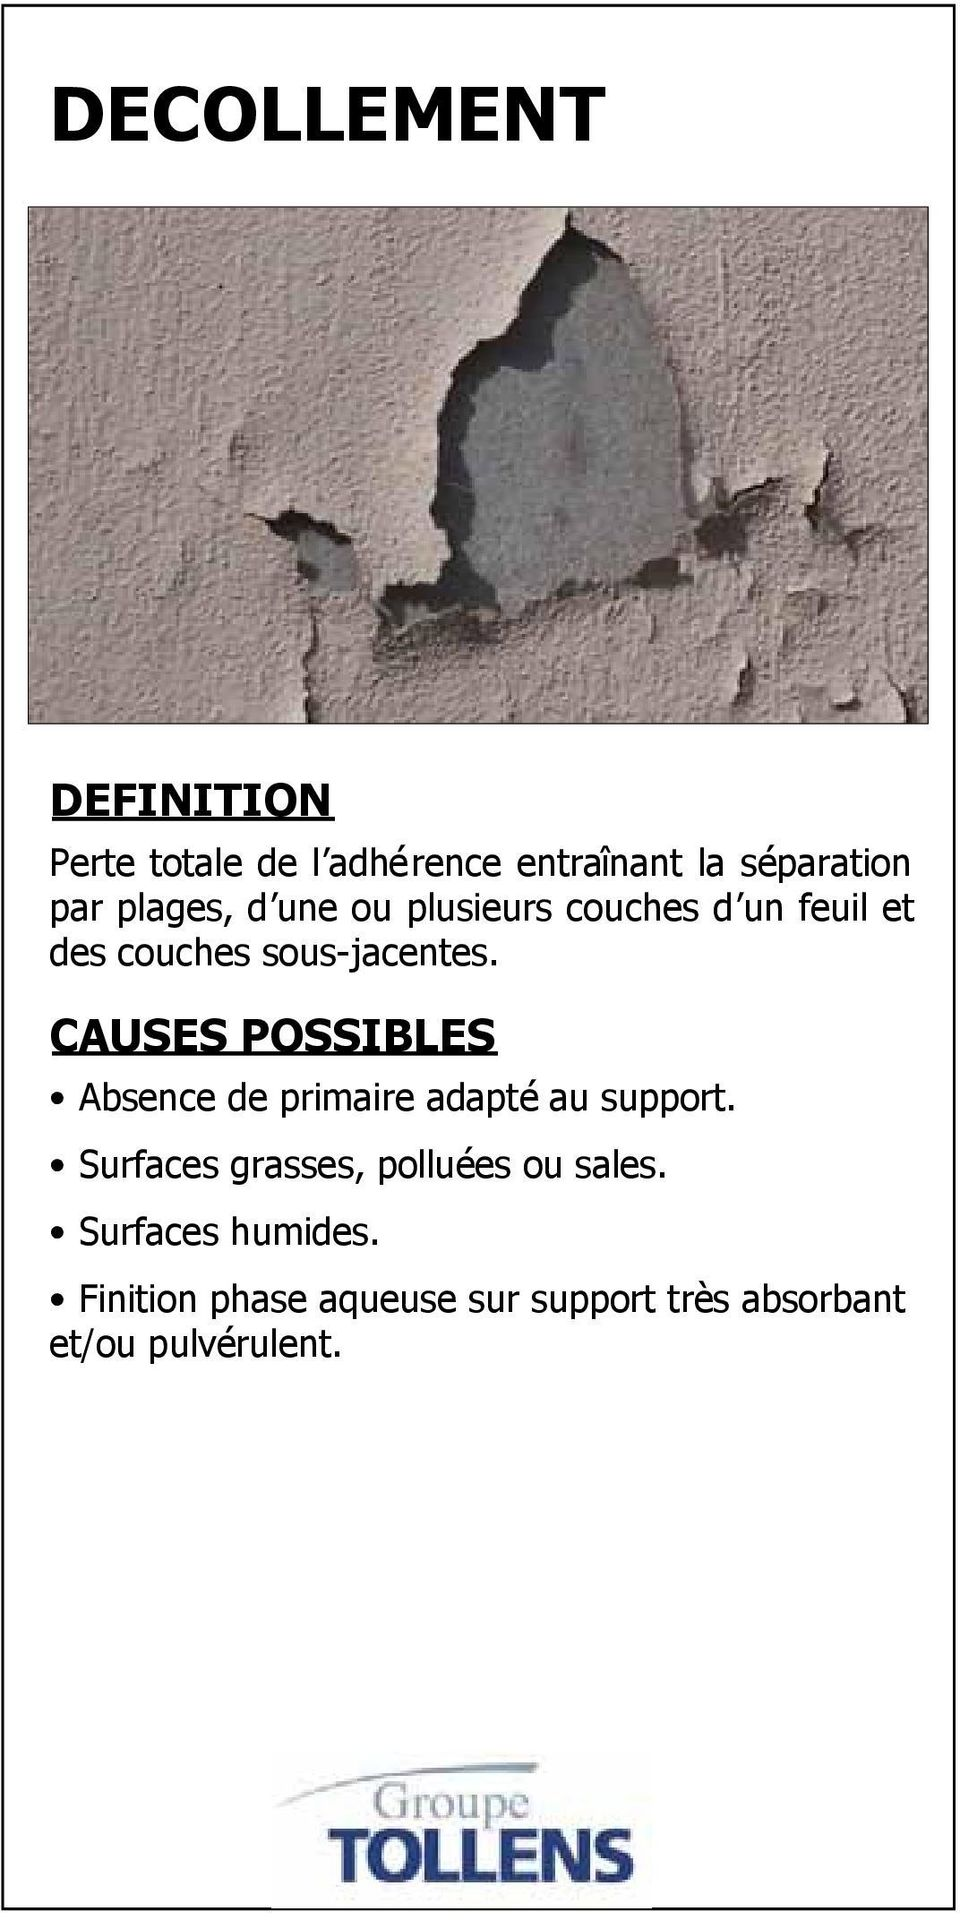 CAUSES POSSIBLES Absence de primaire adapté au support.